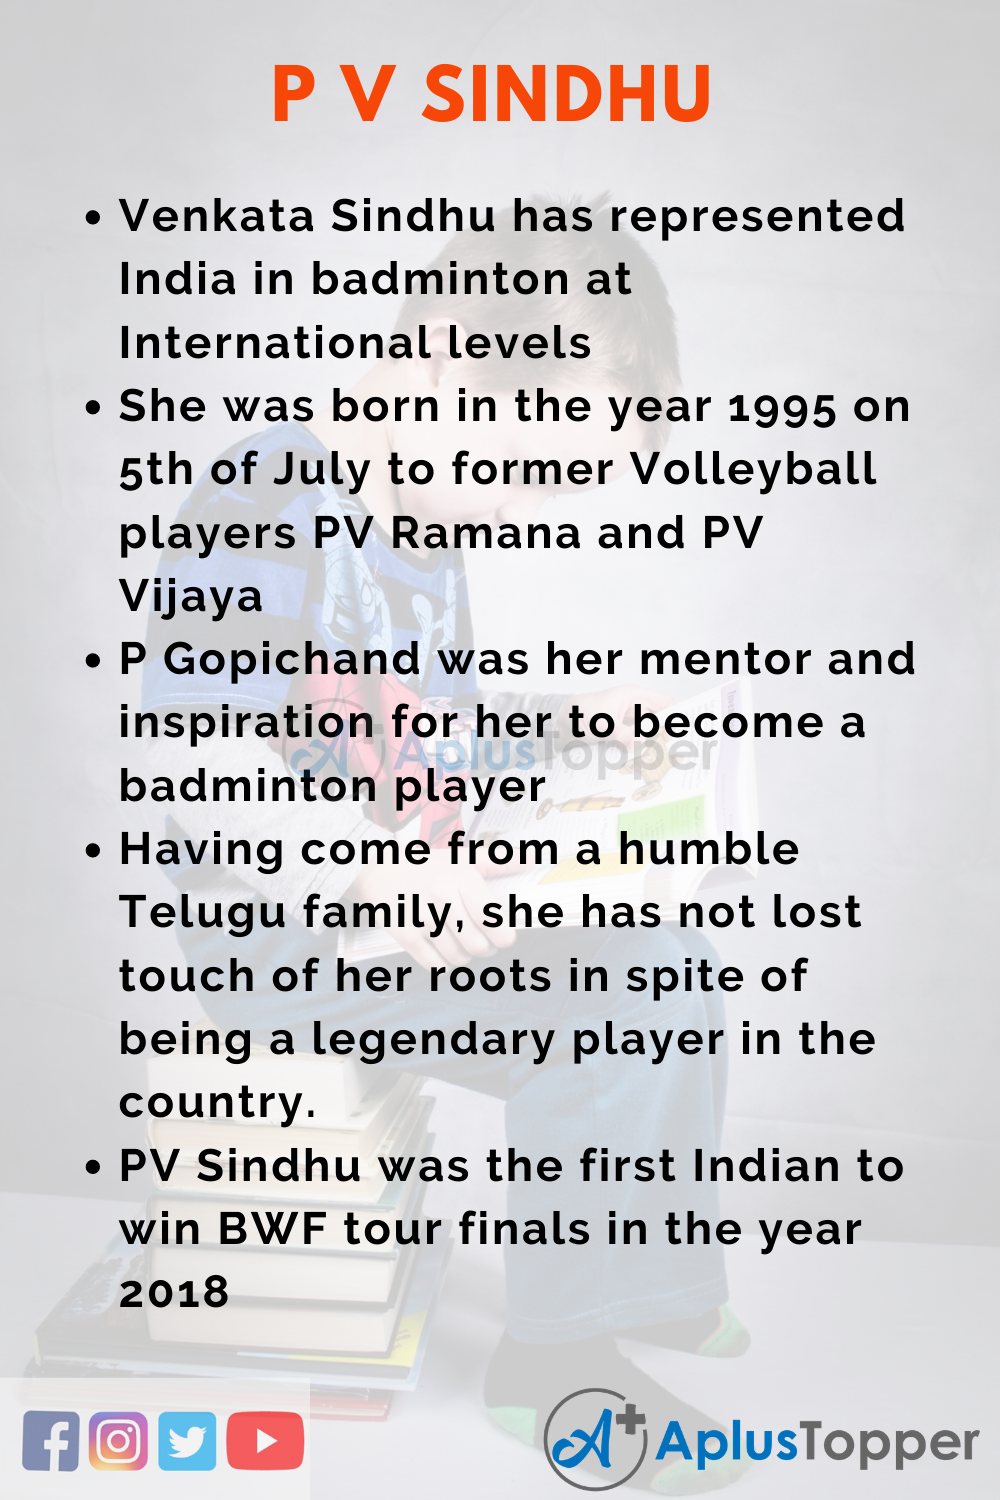 10 Lines on P V Sindhu for Higher Students